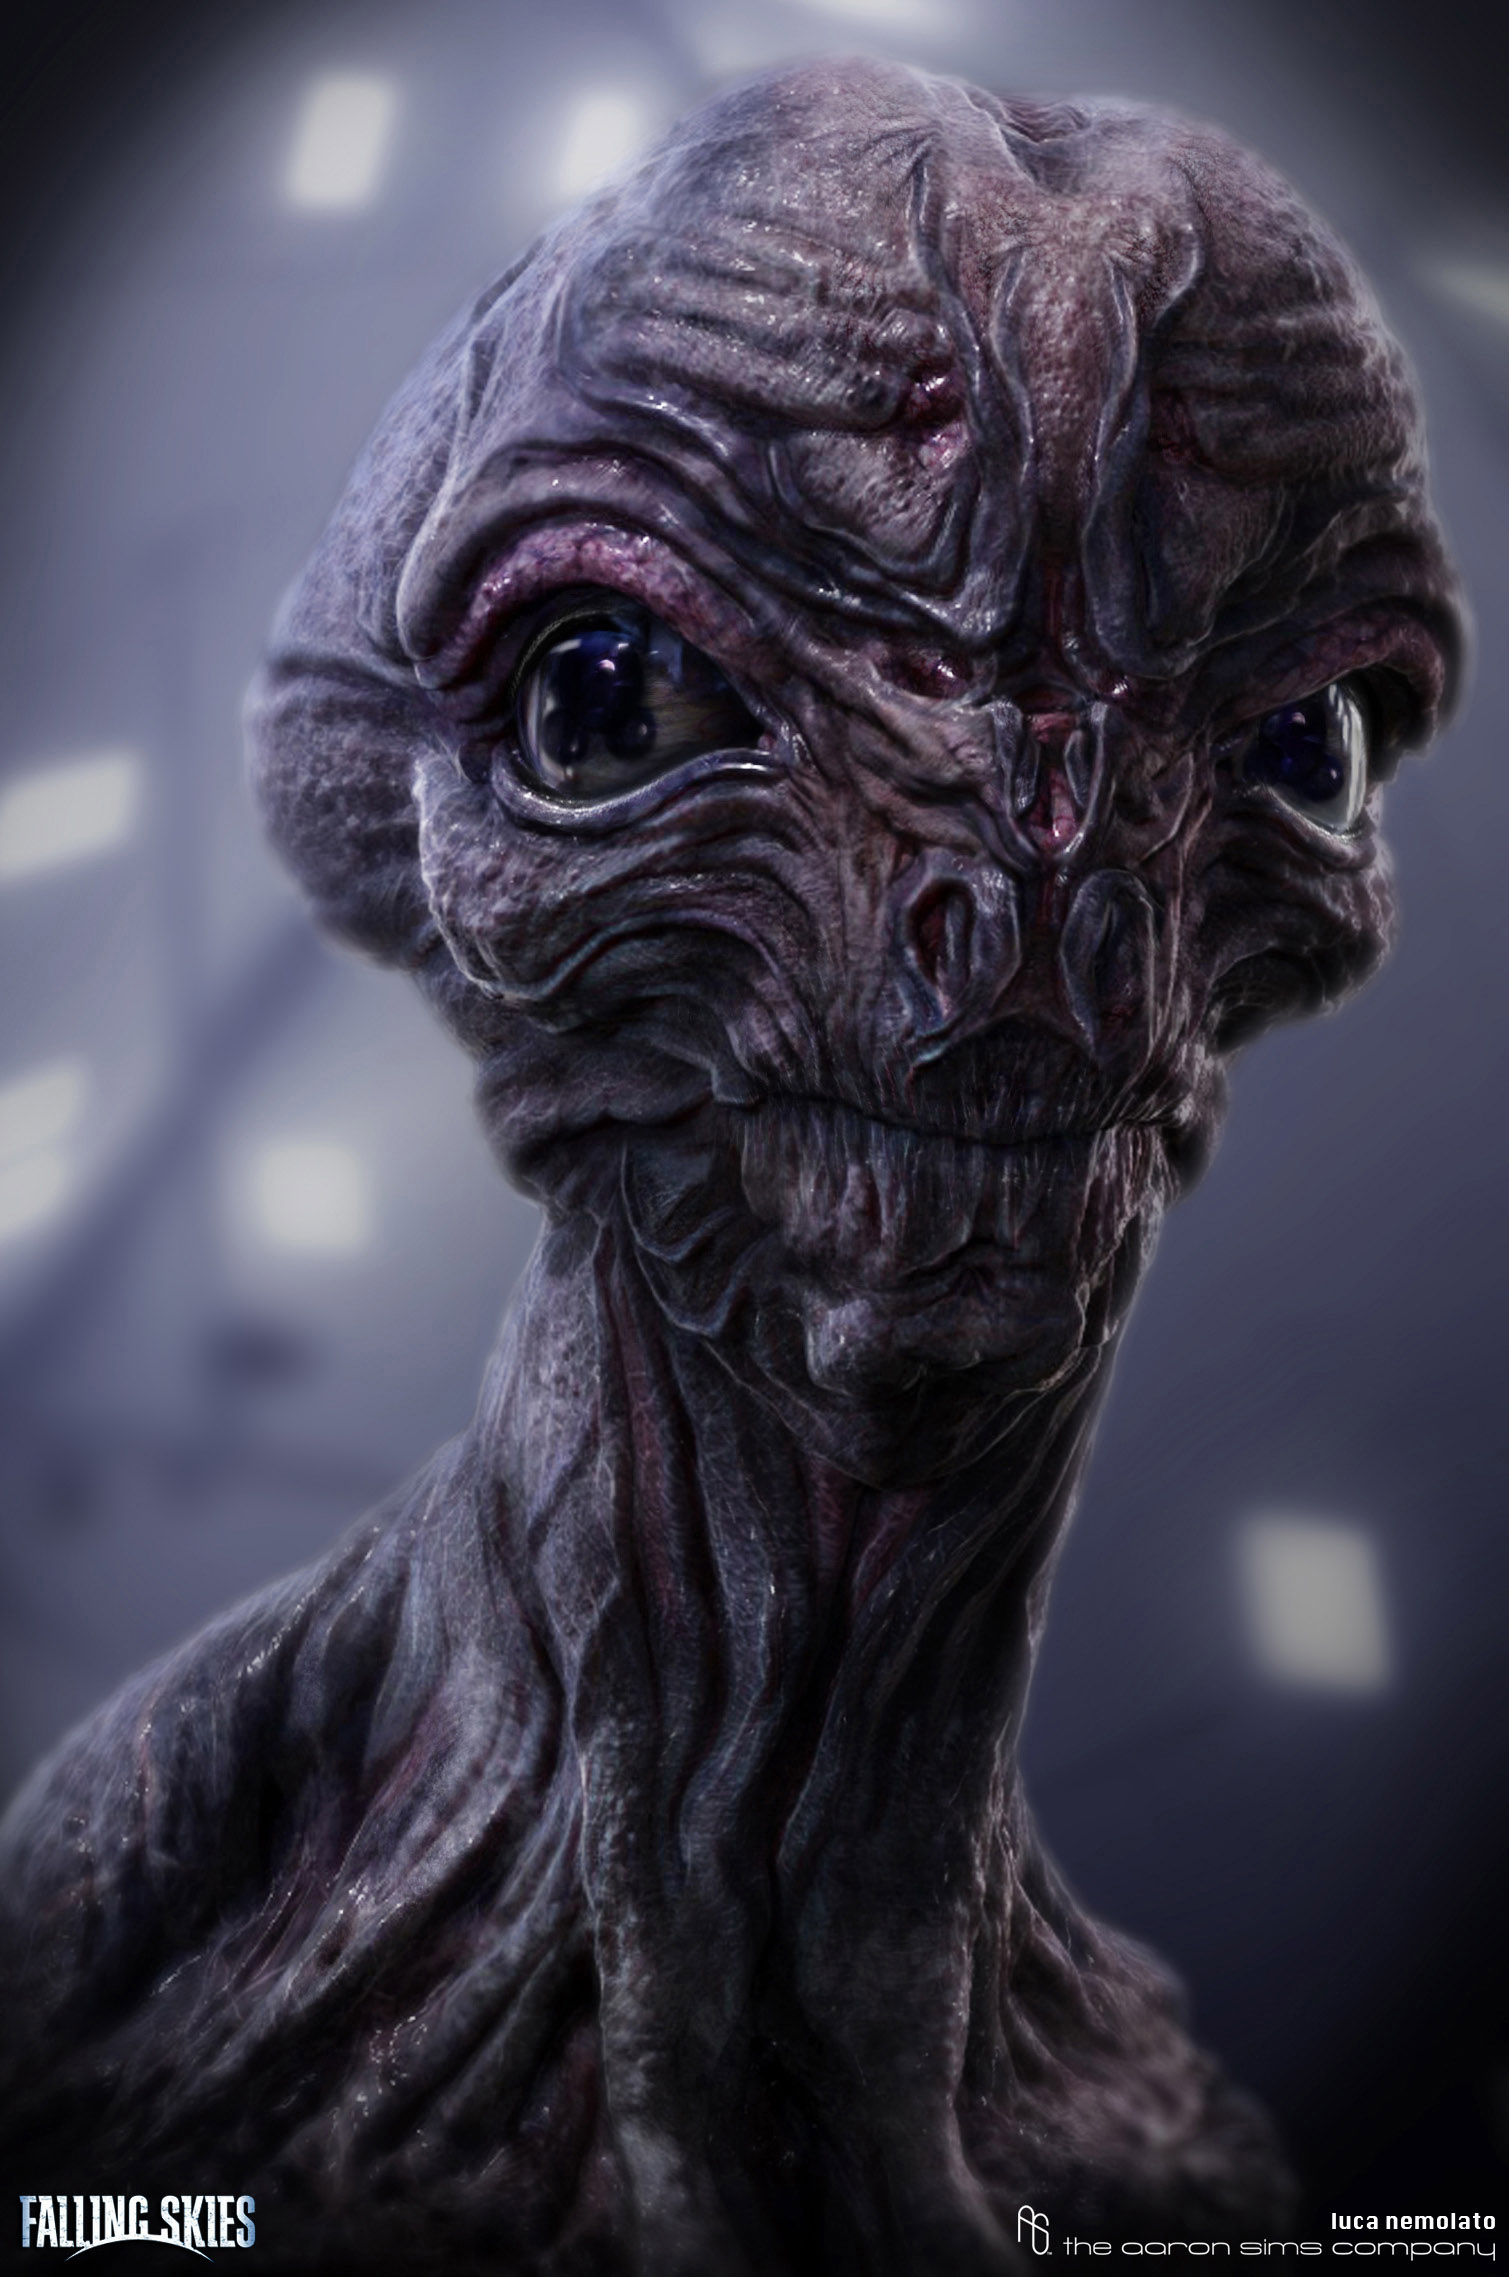 falling skies season 2 alien head design